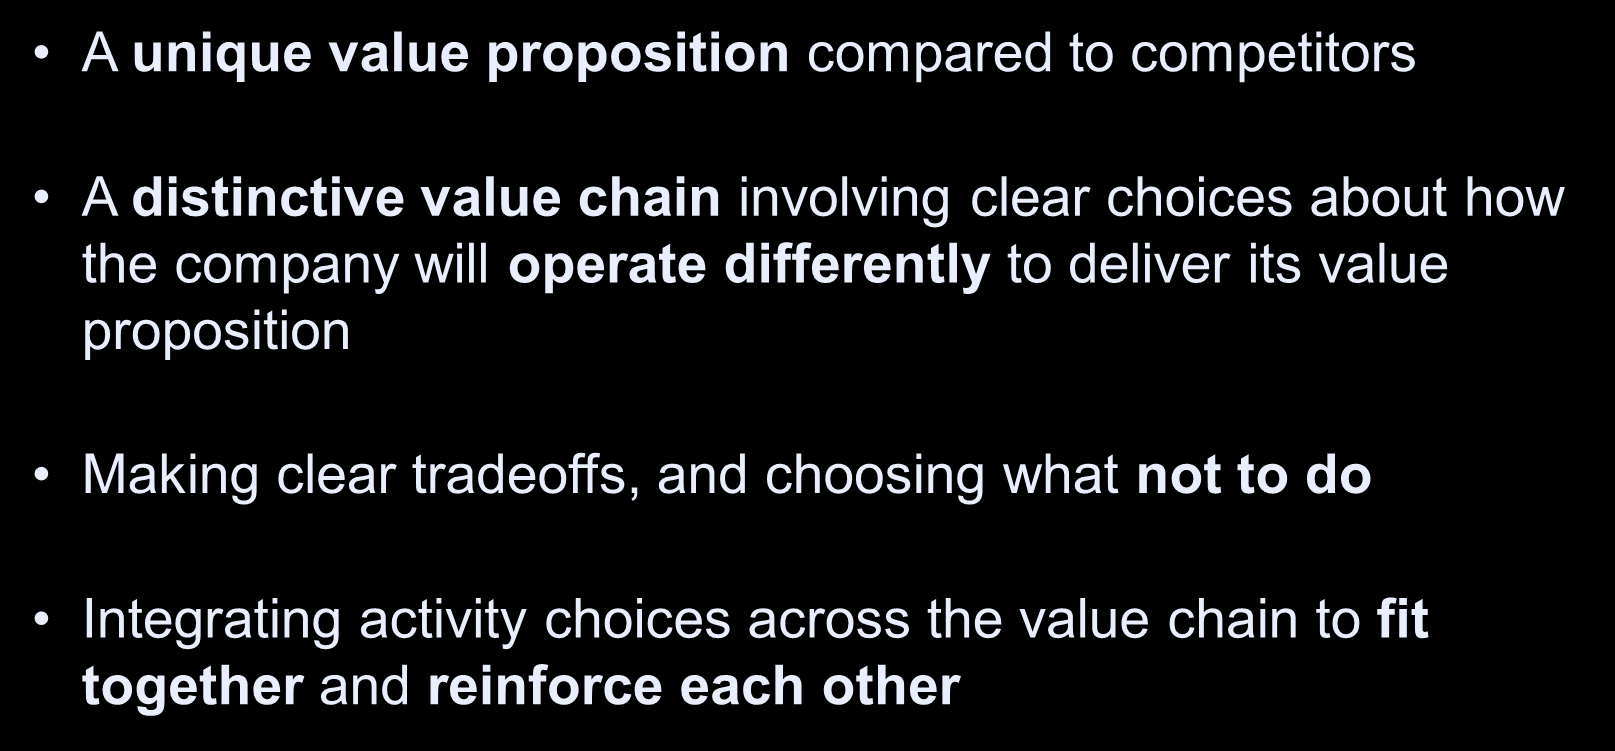 Tests of a Successful Strategy A unique value proposition compared to competitors A distinctive value chain involving clear choices about how the company will operate differently